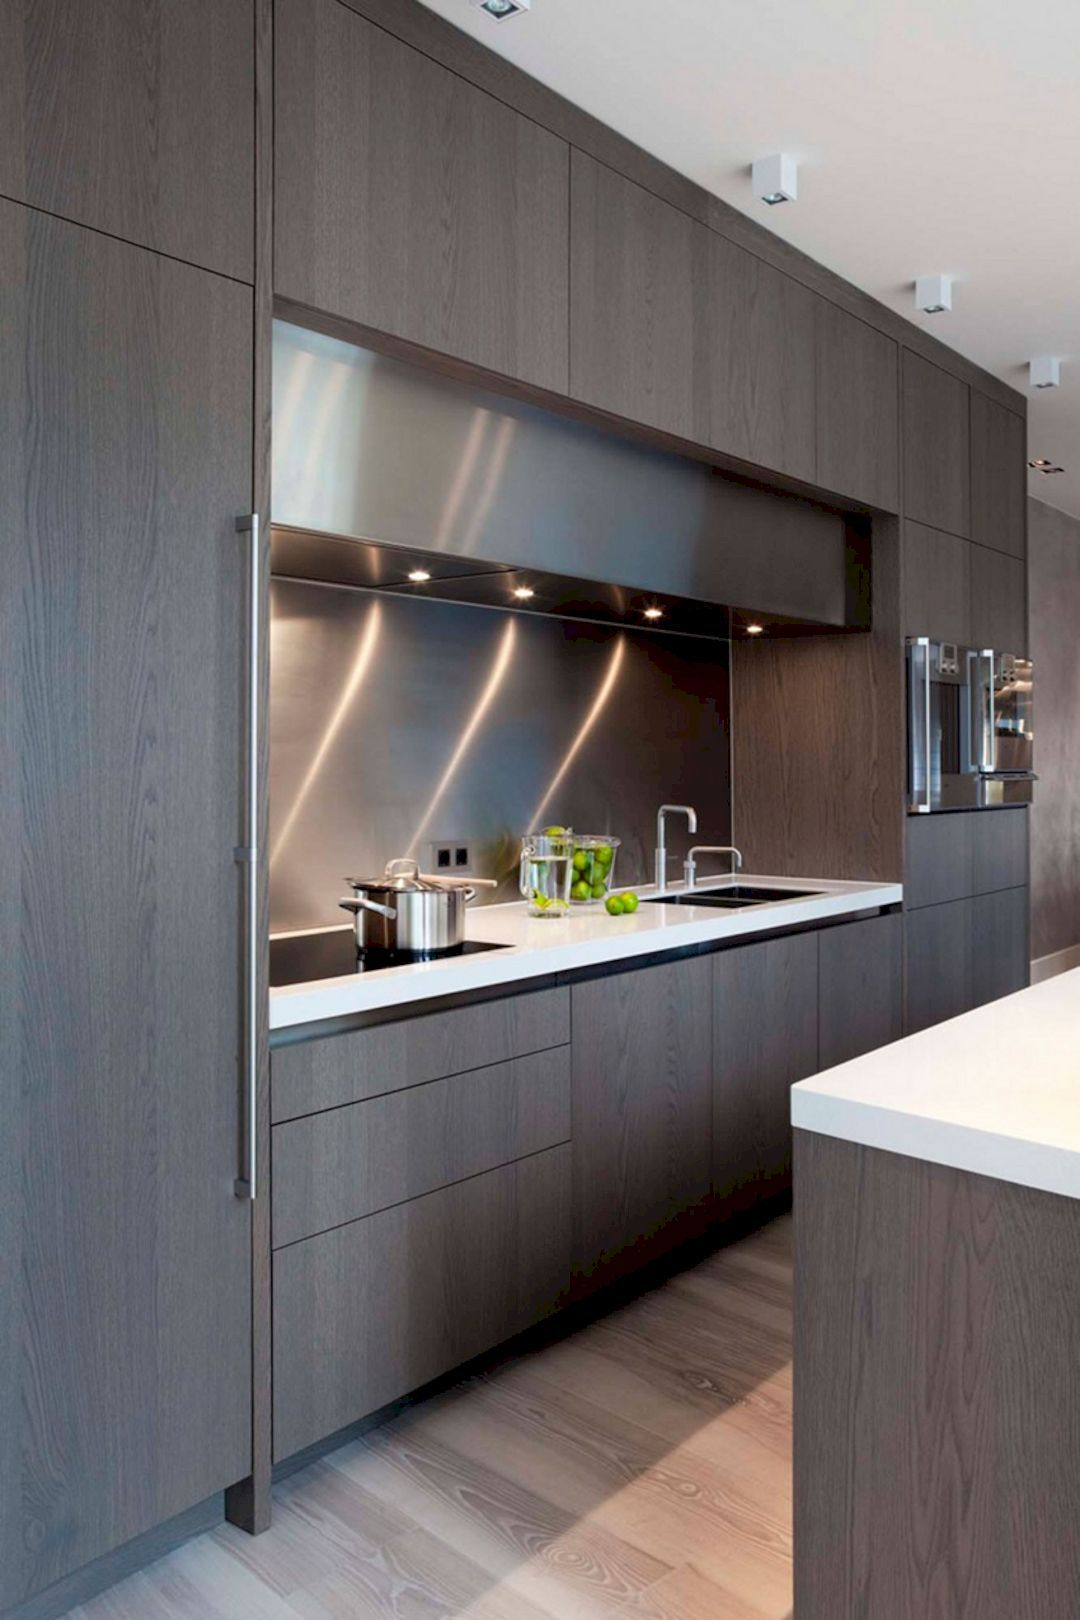 Stylish Modern Kitchen Cabinet 127 Design Ideas Https Www Futuristarchitecture